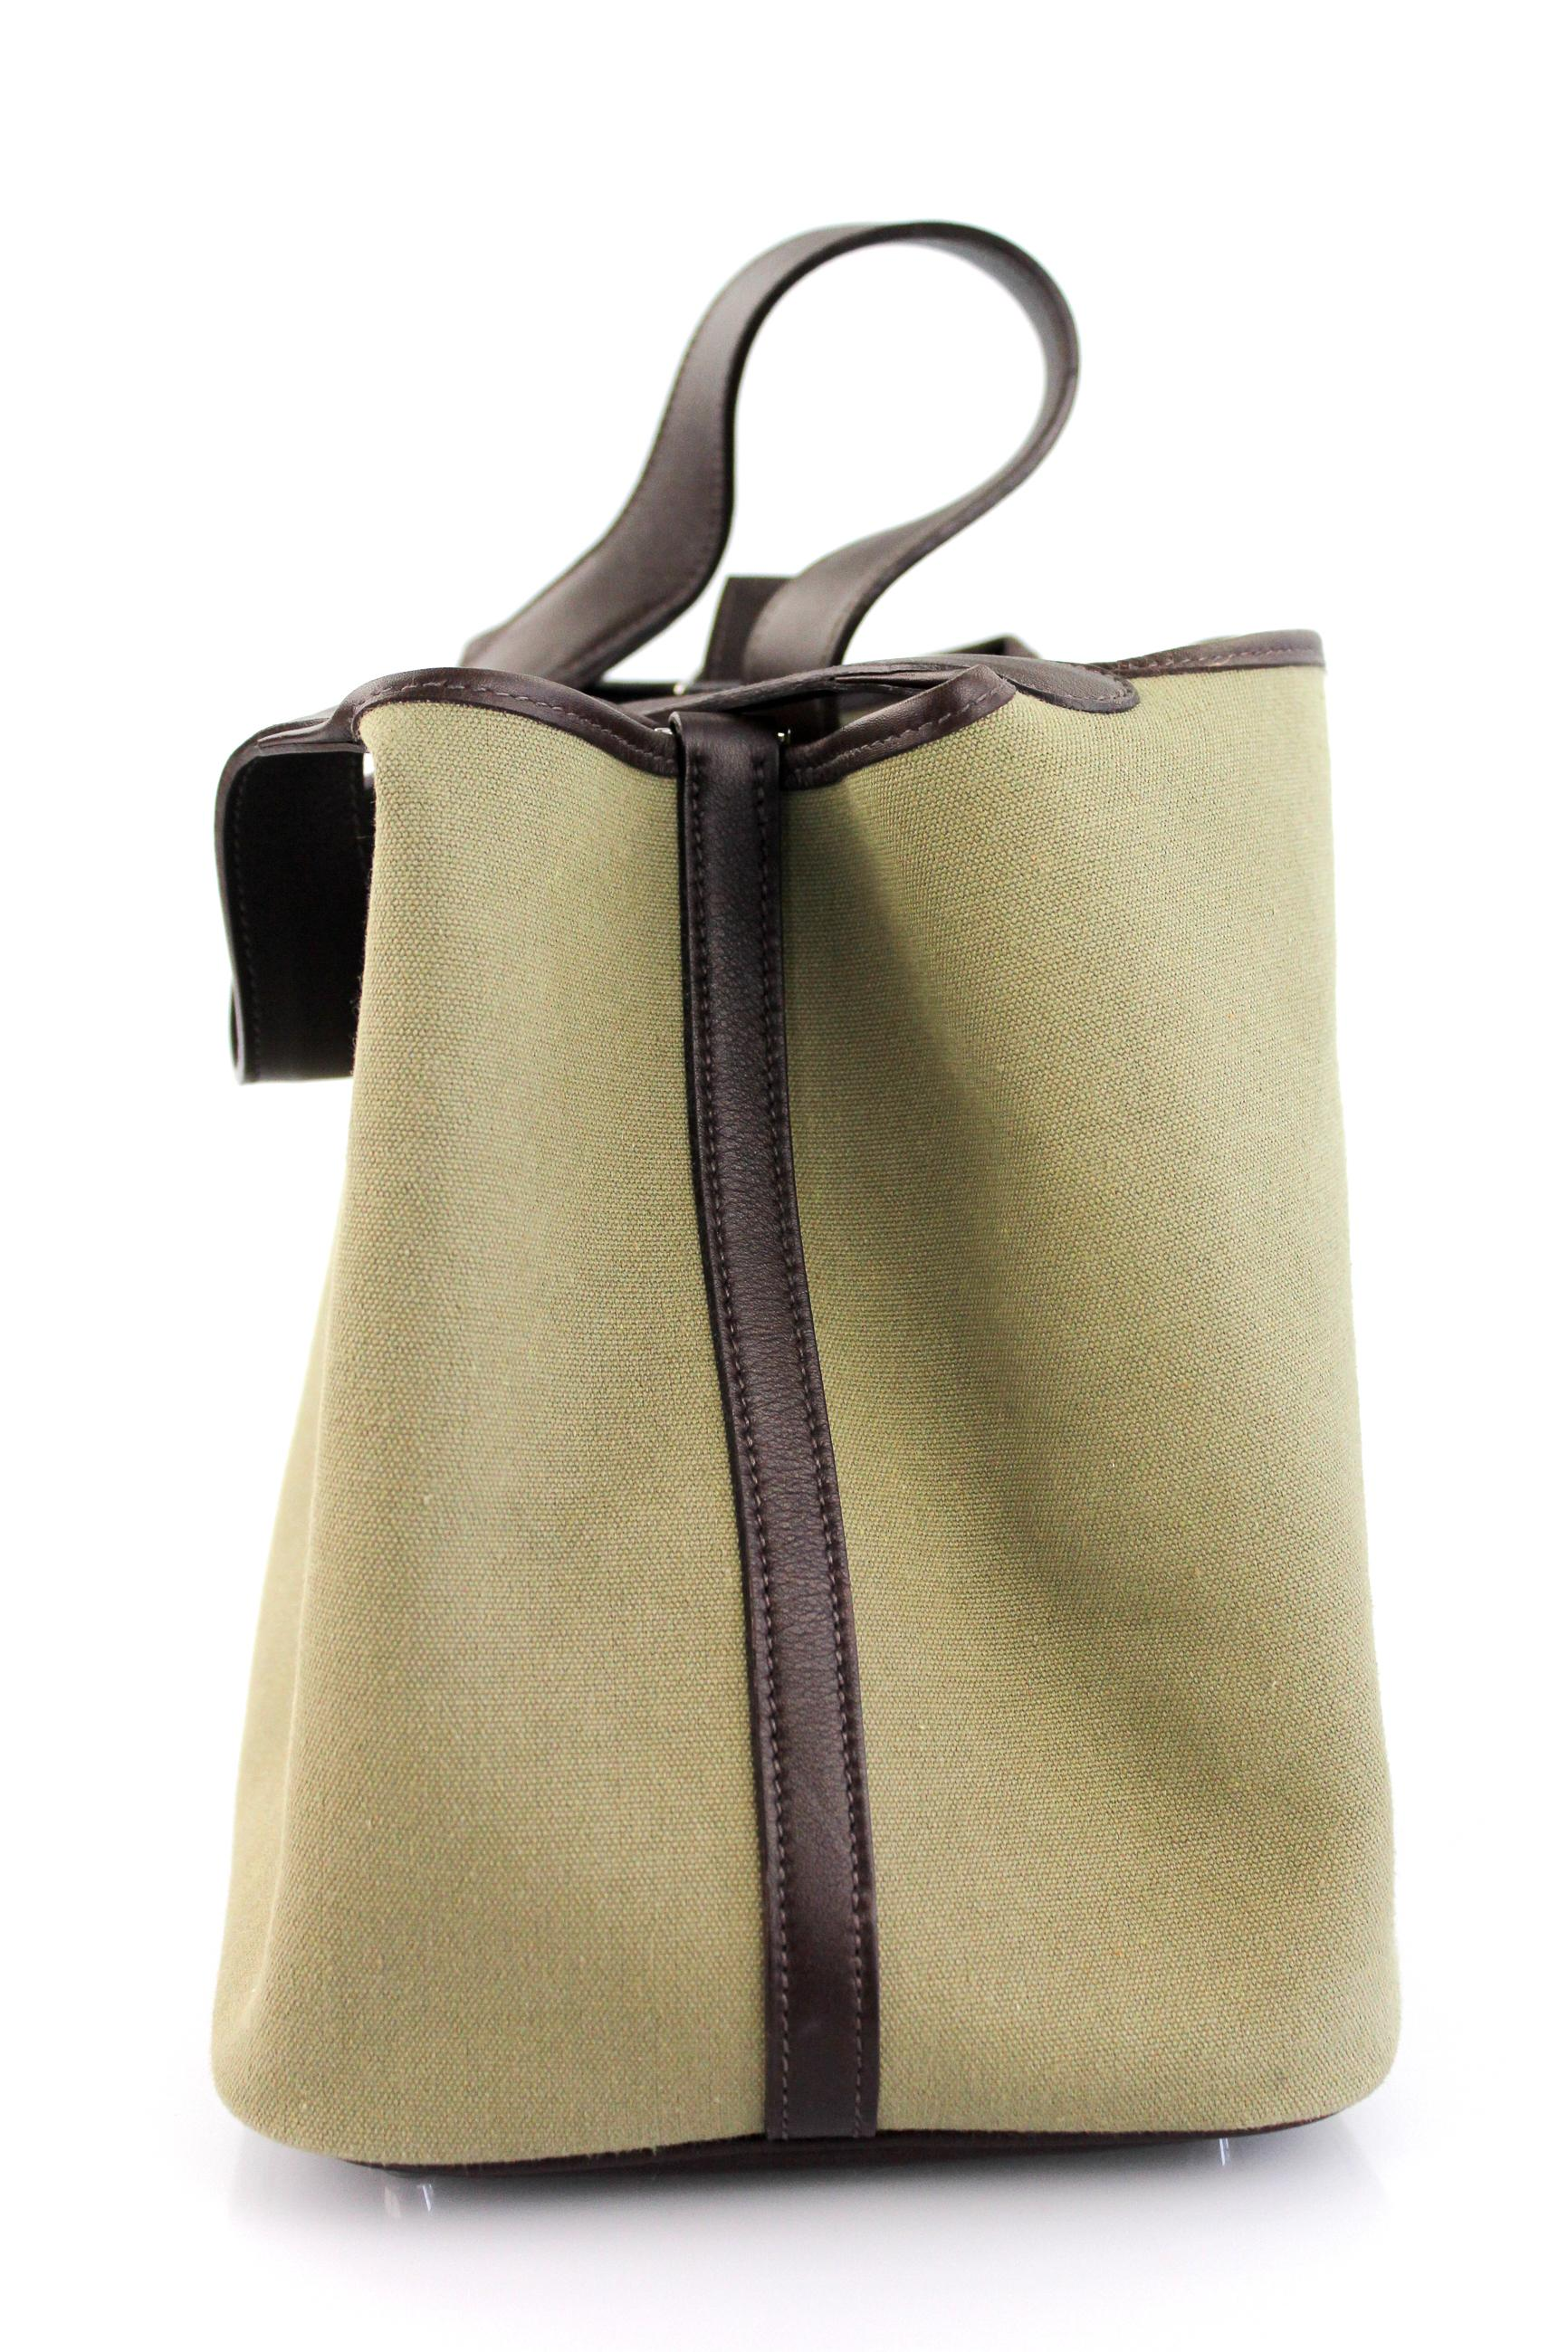 e9ac700c87b9 7a1d2 8cc11  coupon for hermès picotin handbag toile and leather mm olive  green canvas tote ba0f8 72adb